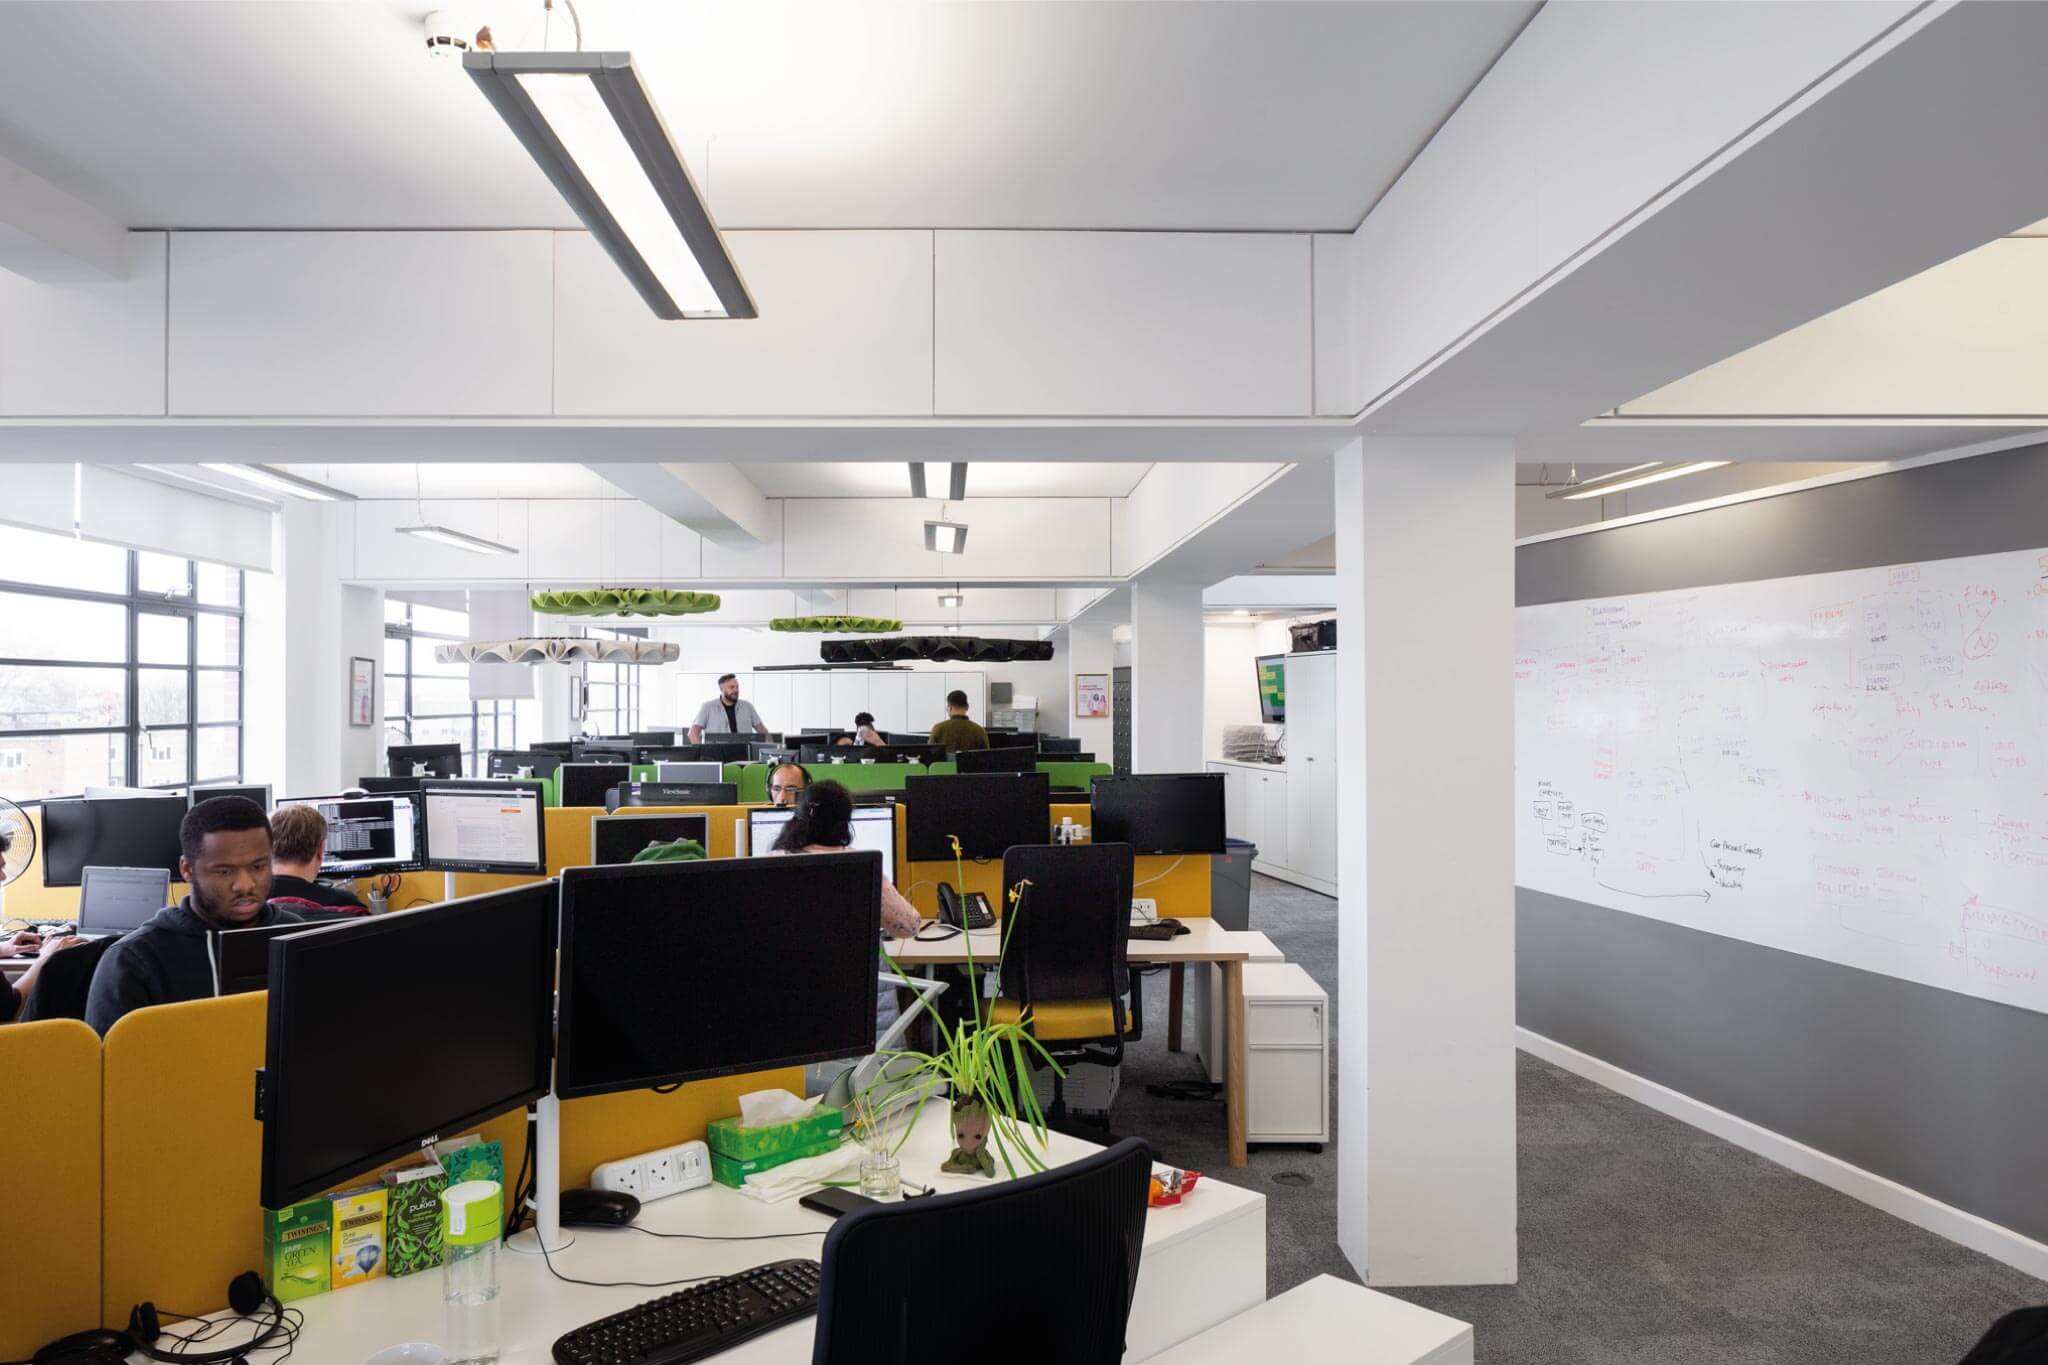 Servelec - London - Dale Office Interiors - White board system - 2019